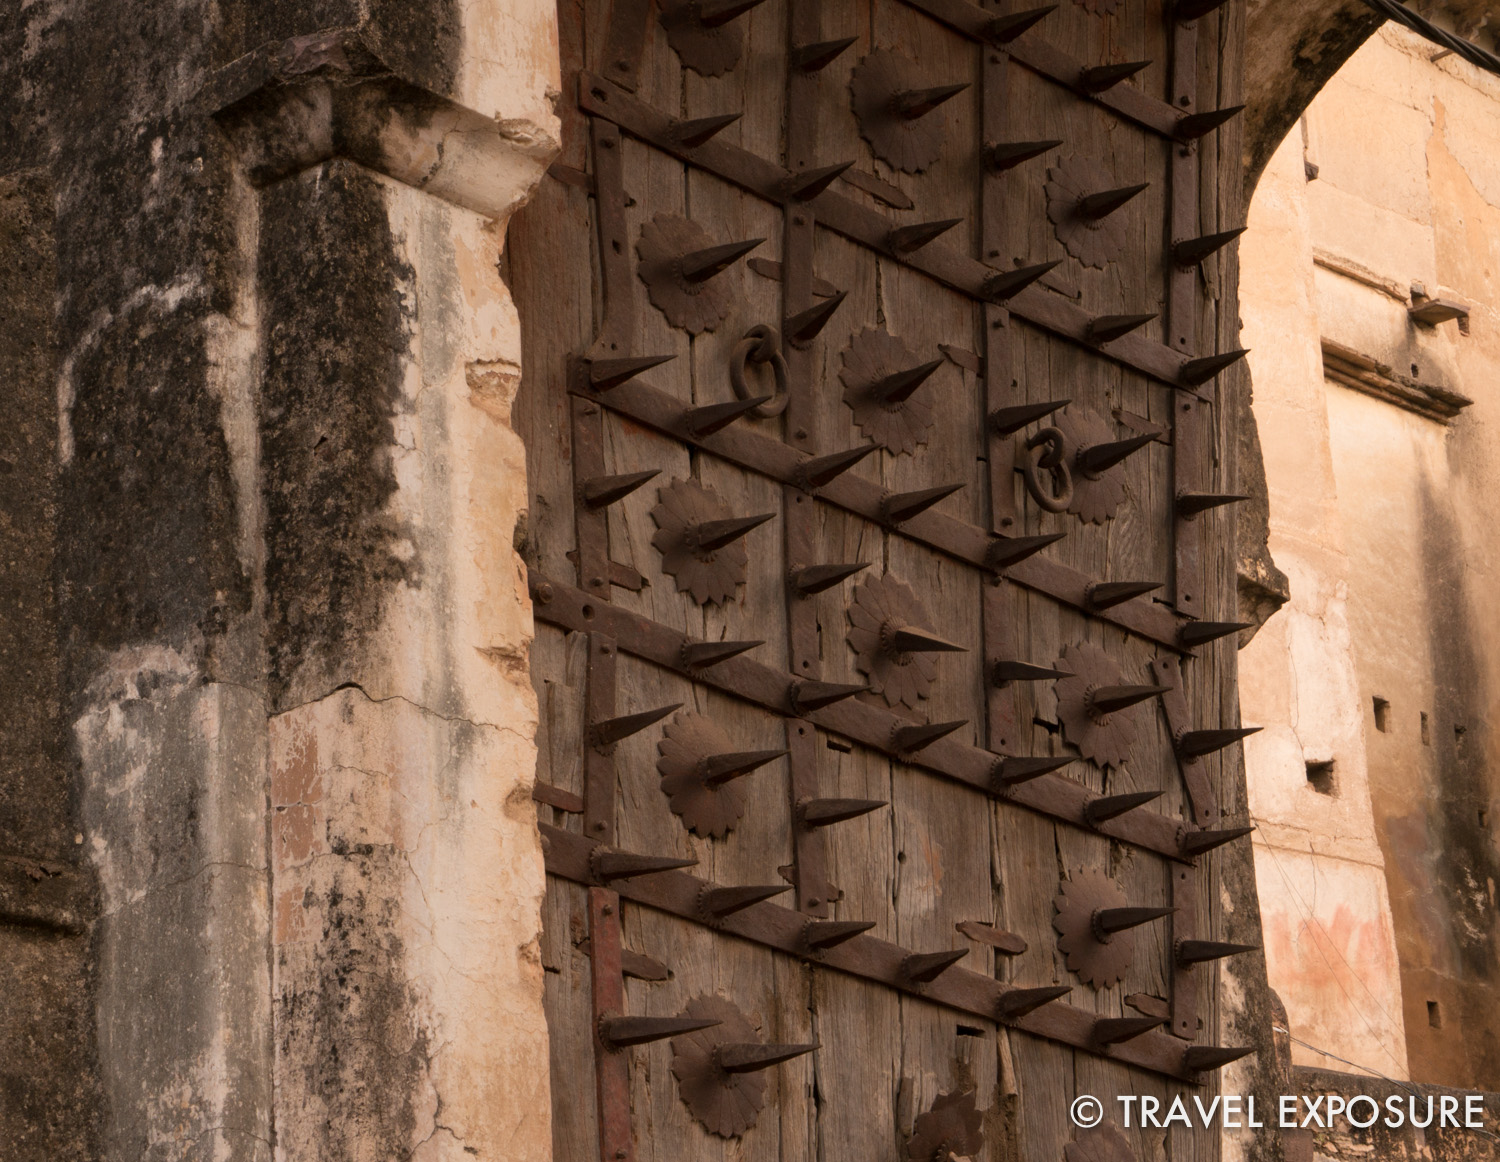 This door has spikes to prevent elephants from sneaking into your fort.